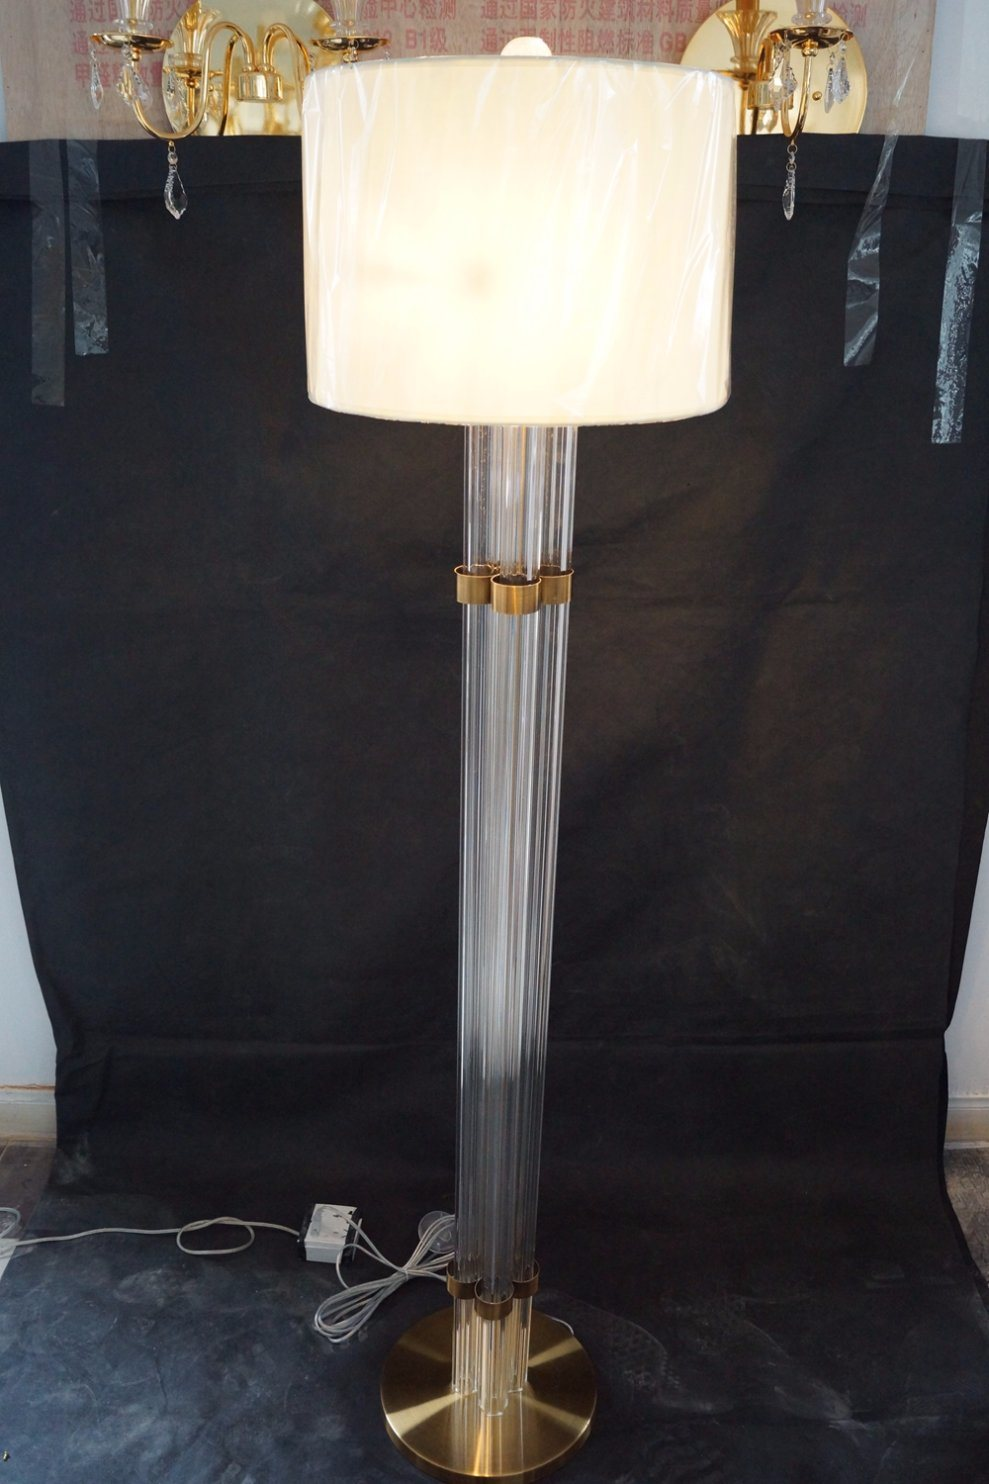 Crystal Modern Design Home Decorative Floor Lamps (KAF6110)